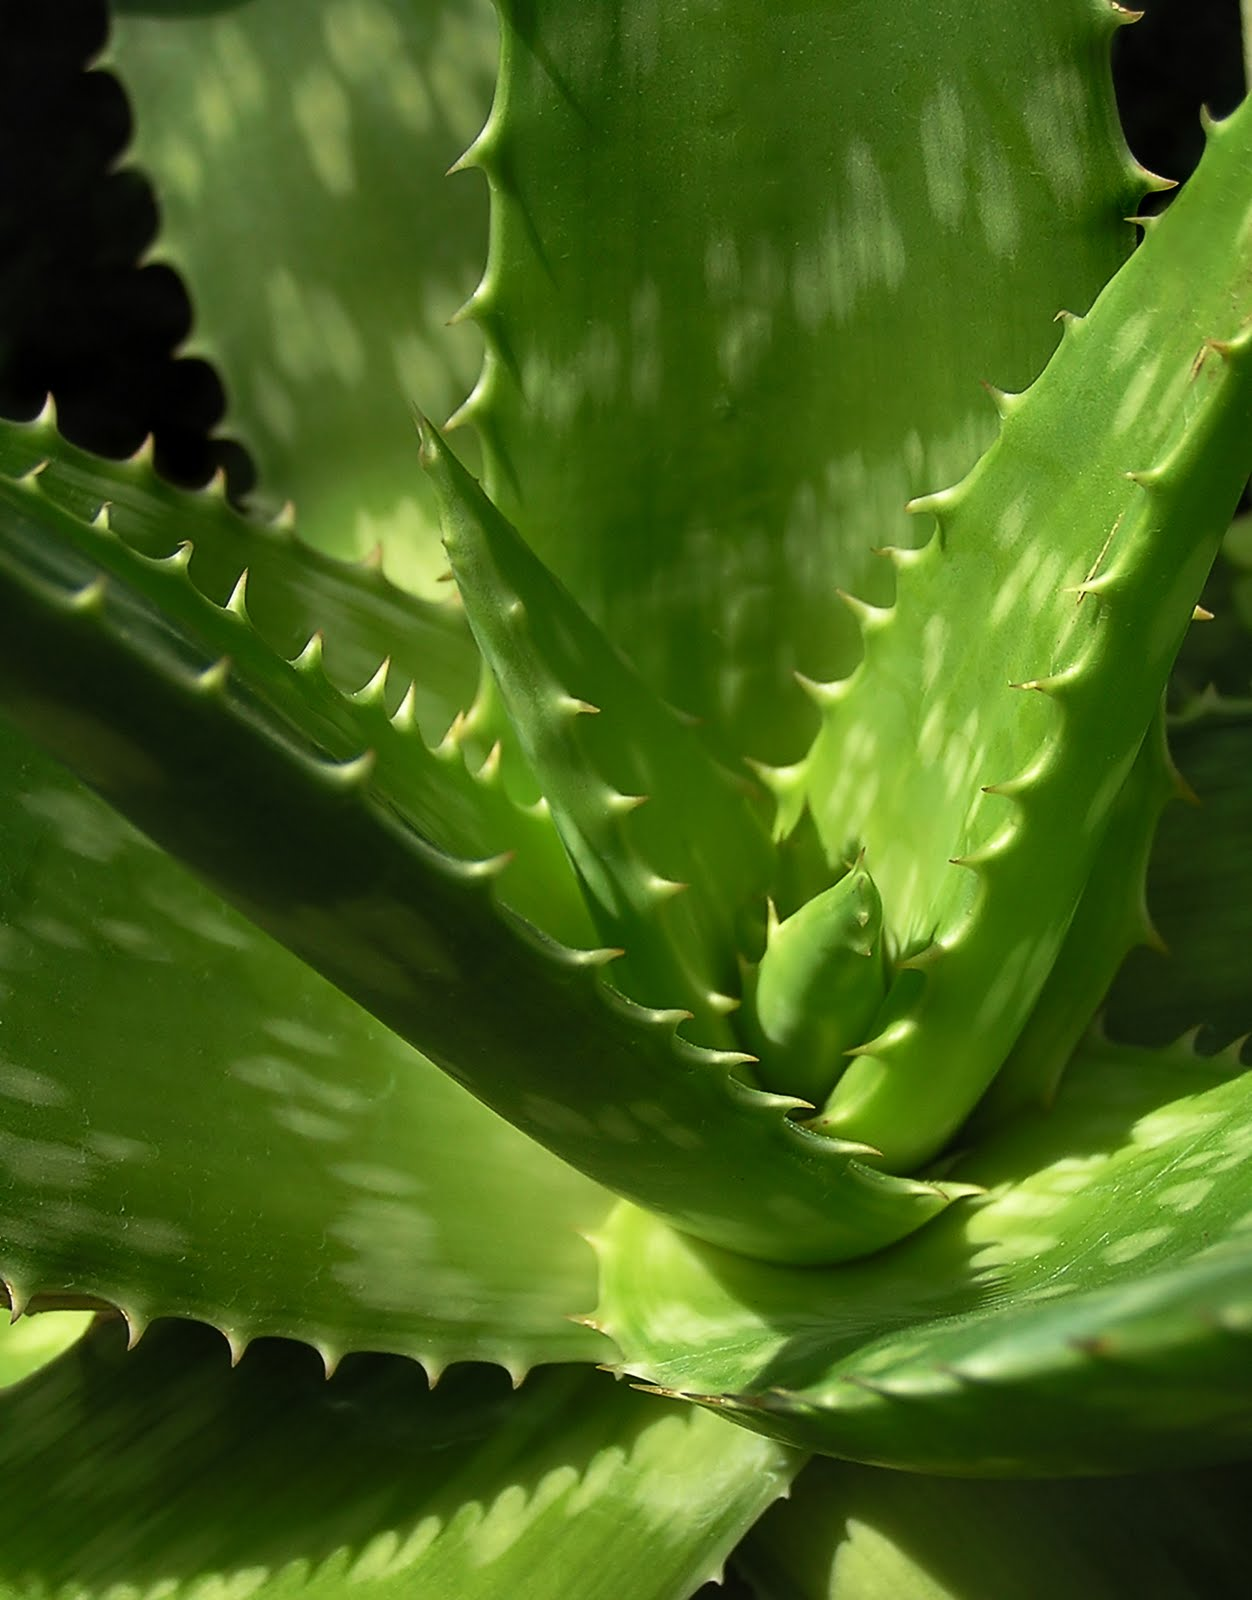 Aloe Vera Plant Care The Ultimate Guide For How To Grow: How To Care Plants And Flowers: Aloe Vera (syn. Aloe